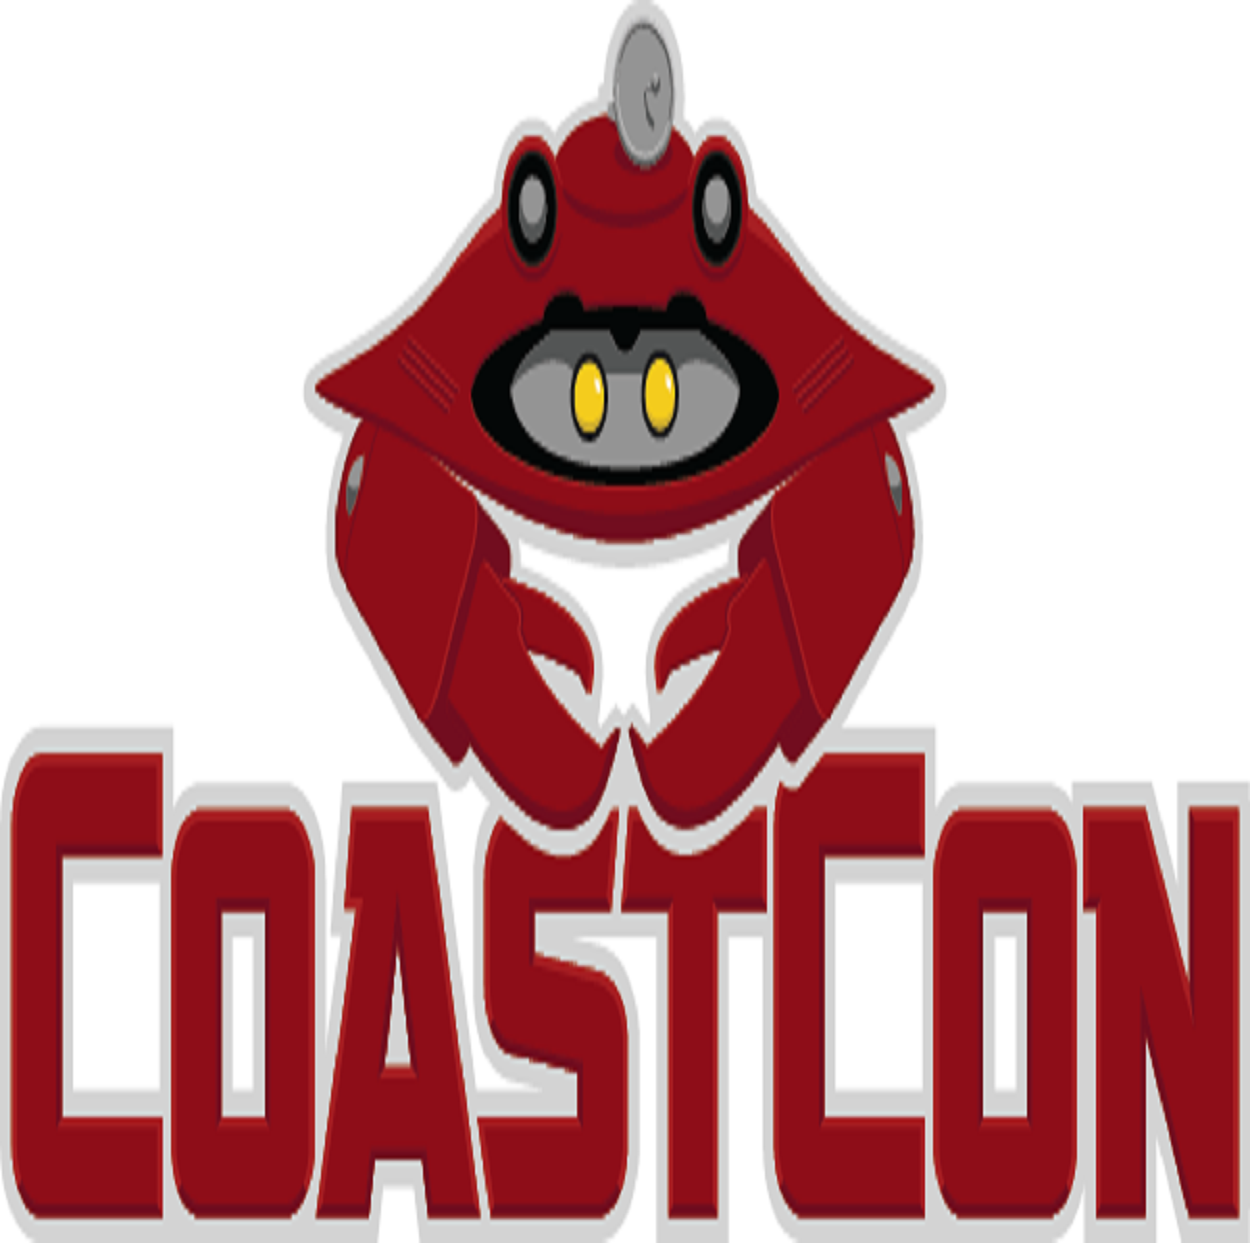 CoastCon logo